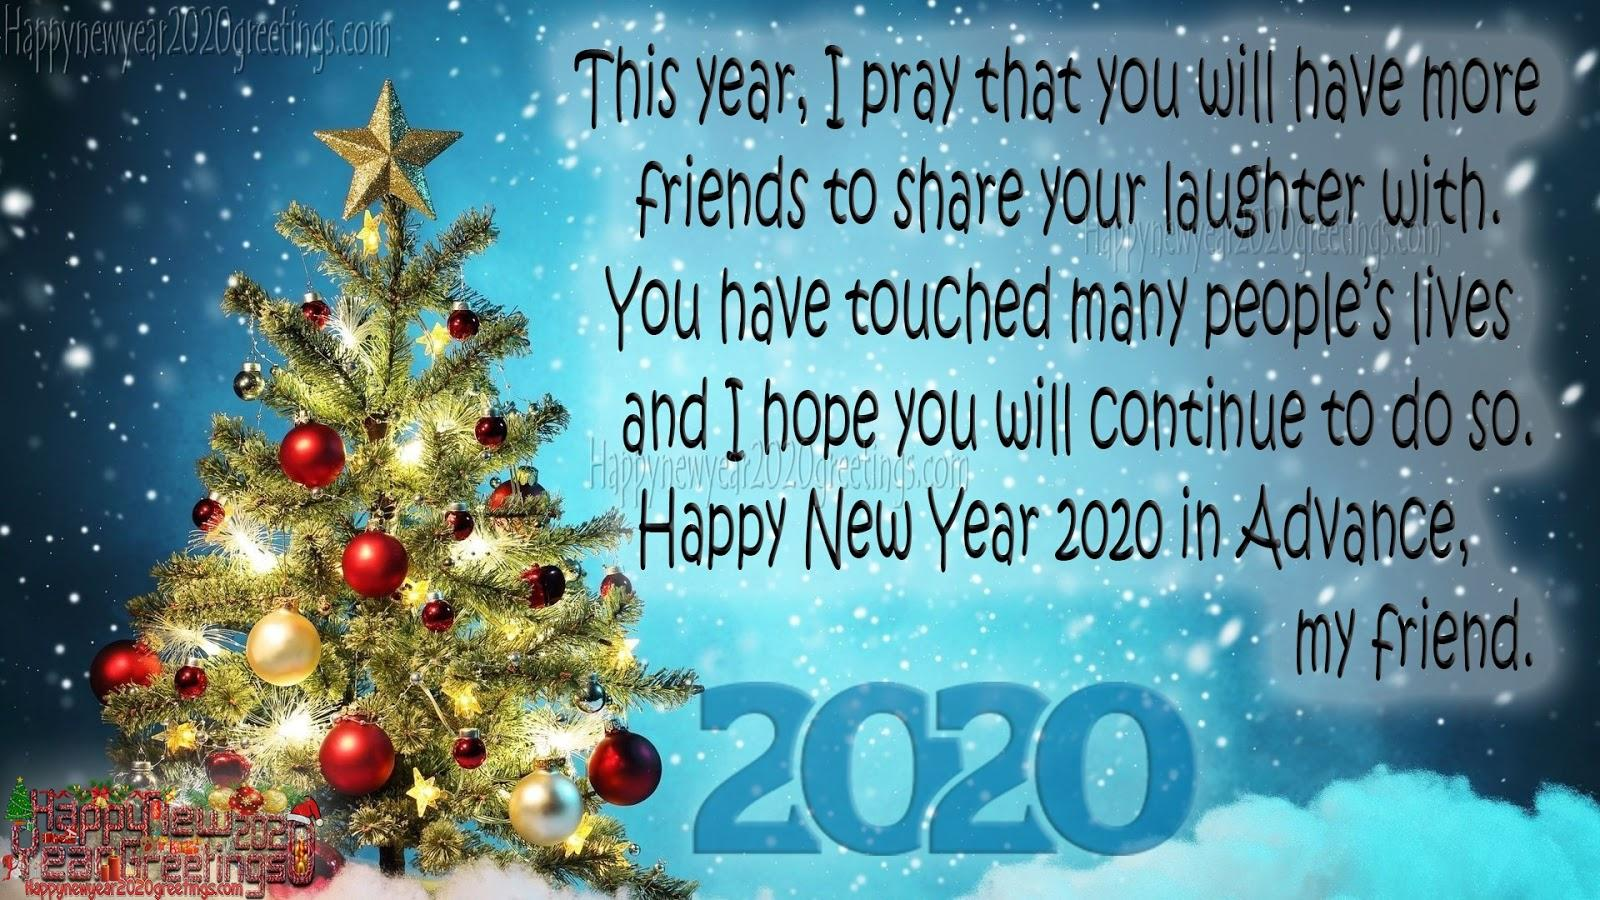 Happy New Year 2020 Advance Wallpapers - Wallpaper Cave